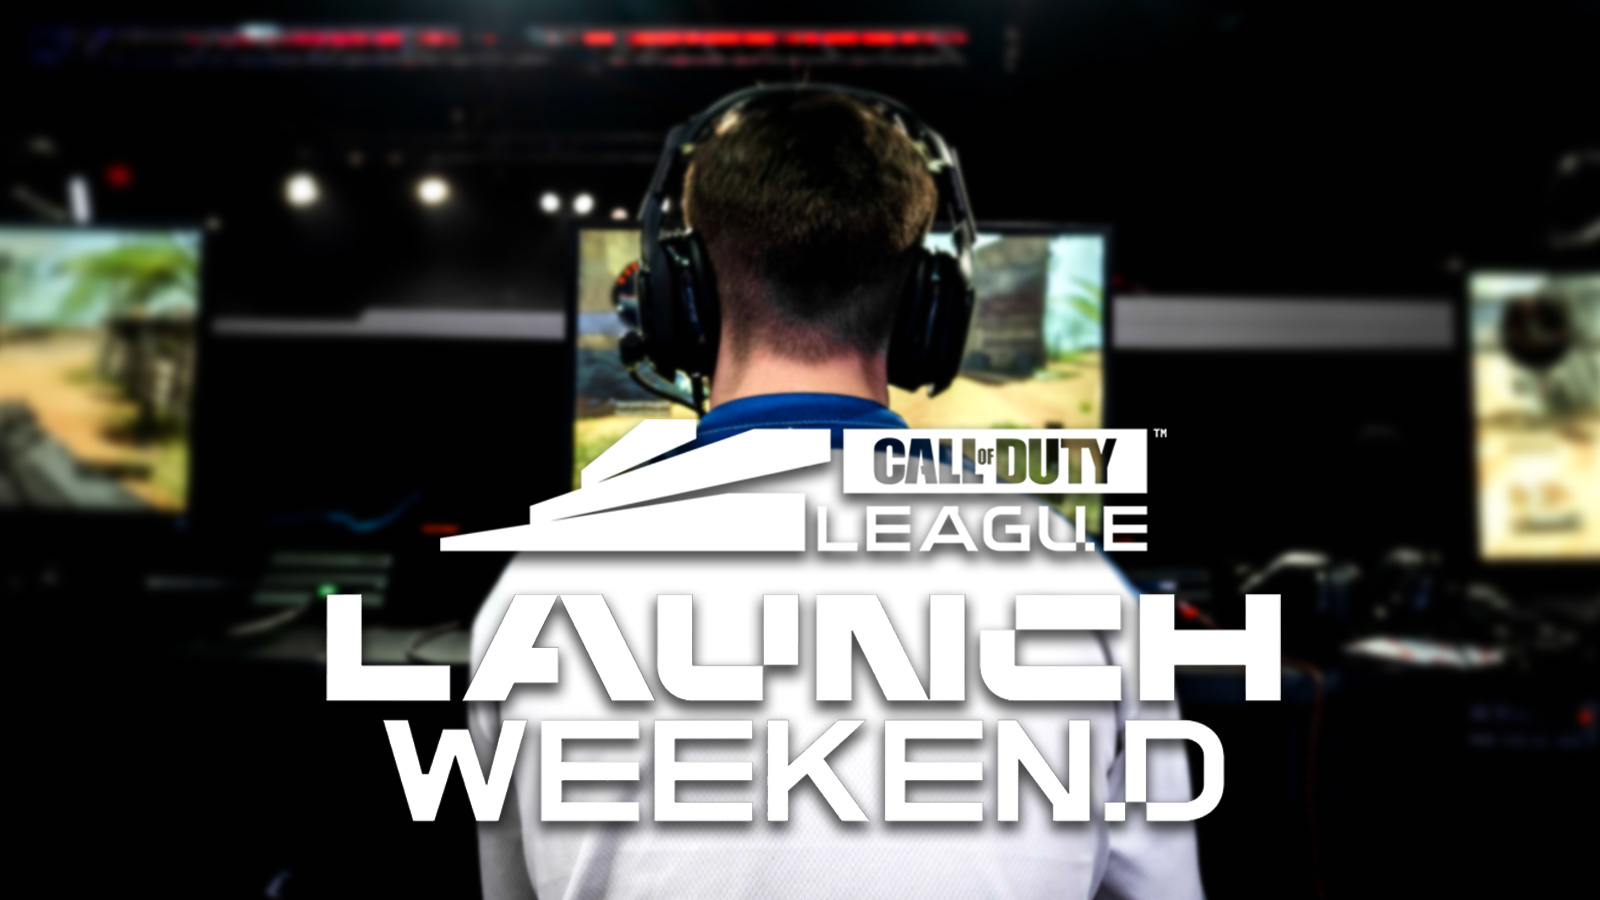 Players to watch during the Call of Duty League Launch Weekend